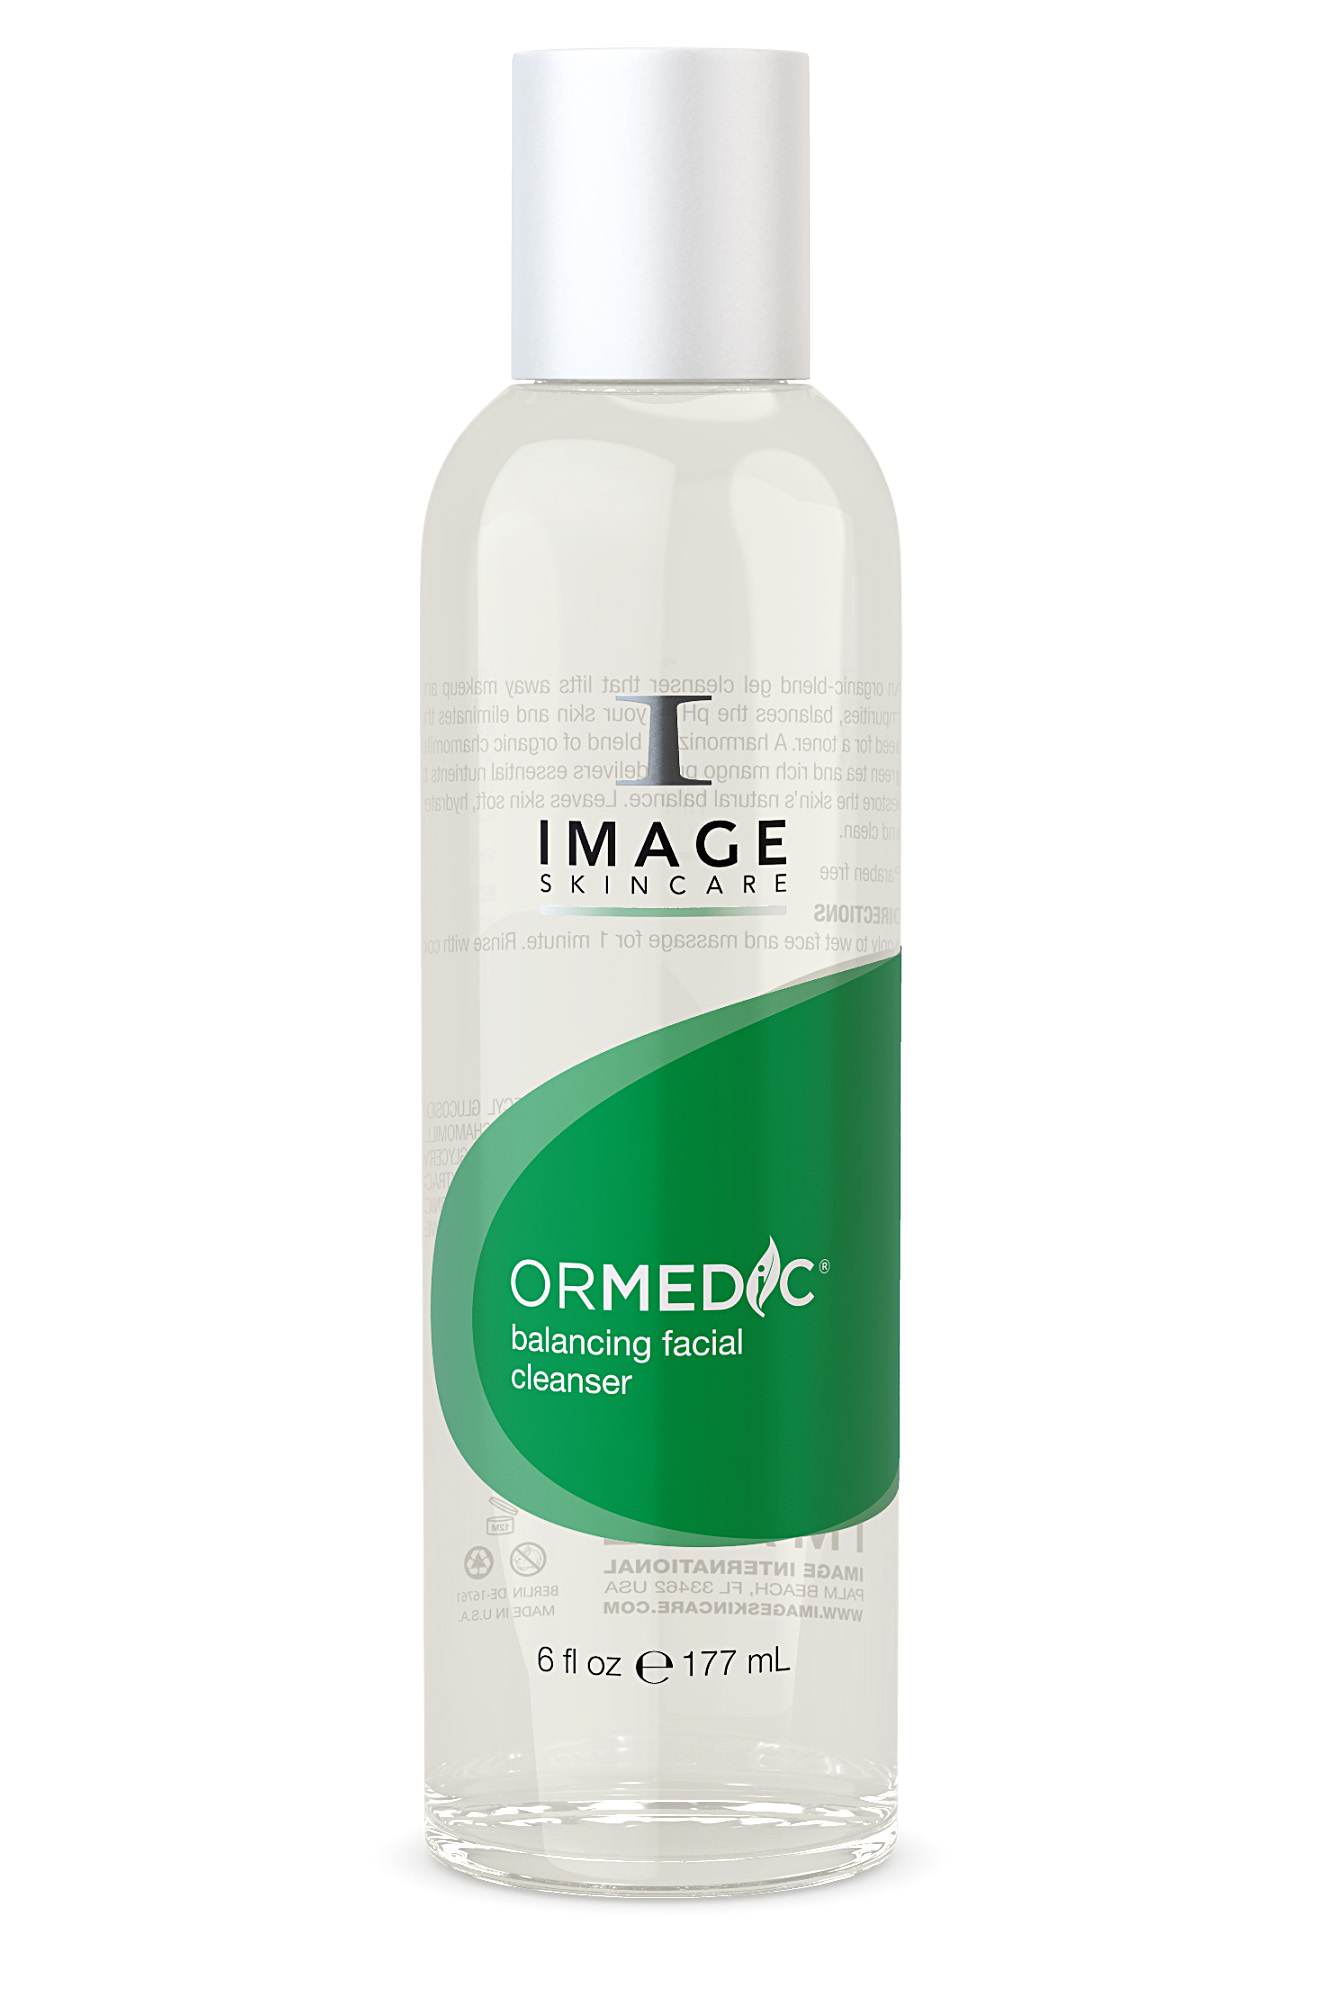 Image Ormedic Balancing Facial Cleanser The Temple Skincare Spa